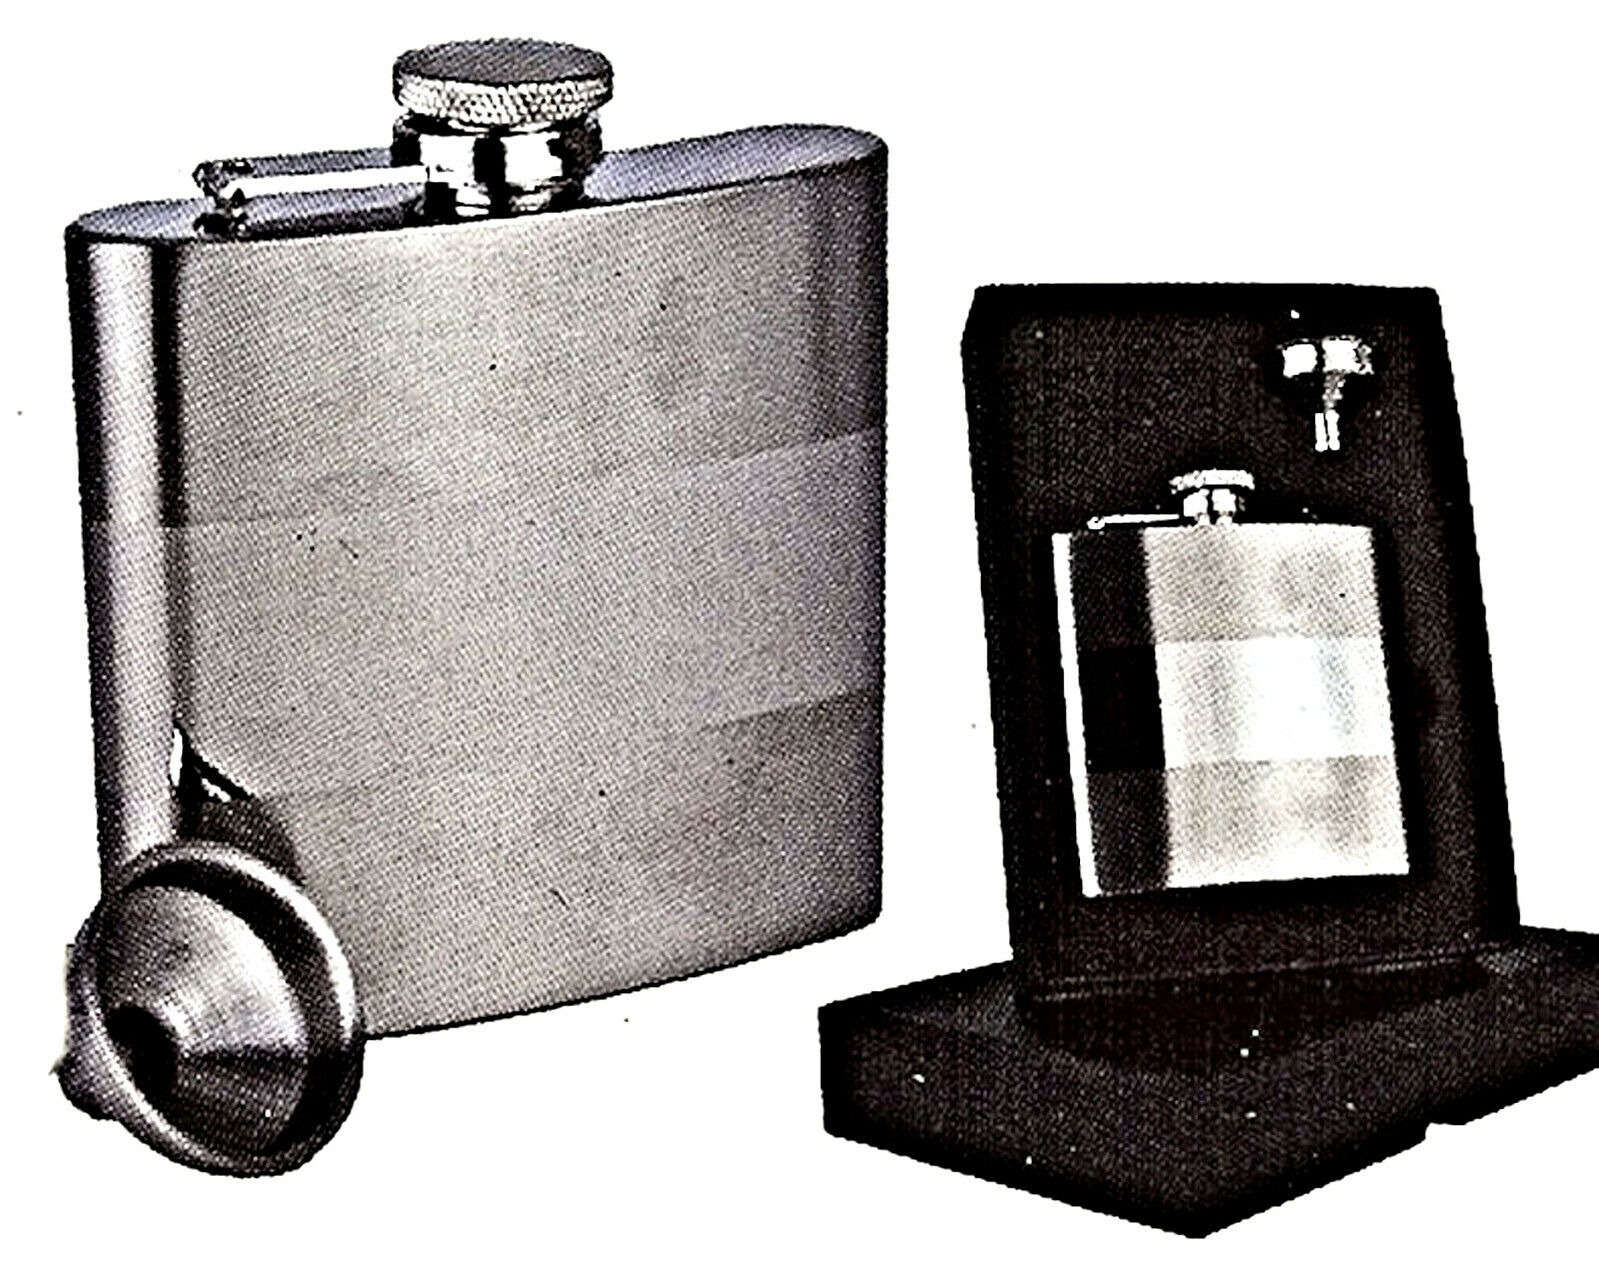 6oz Stainless Steel Hip Flask with funnel in presentation box